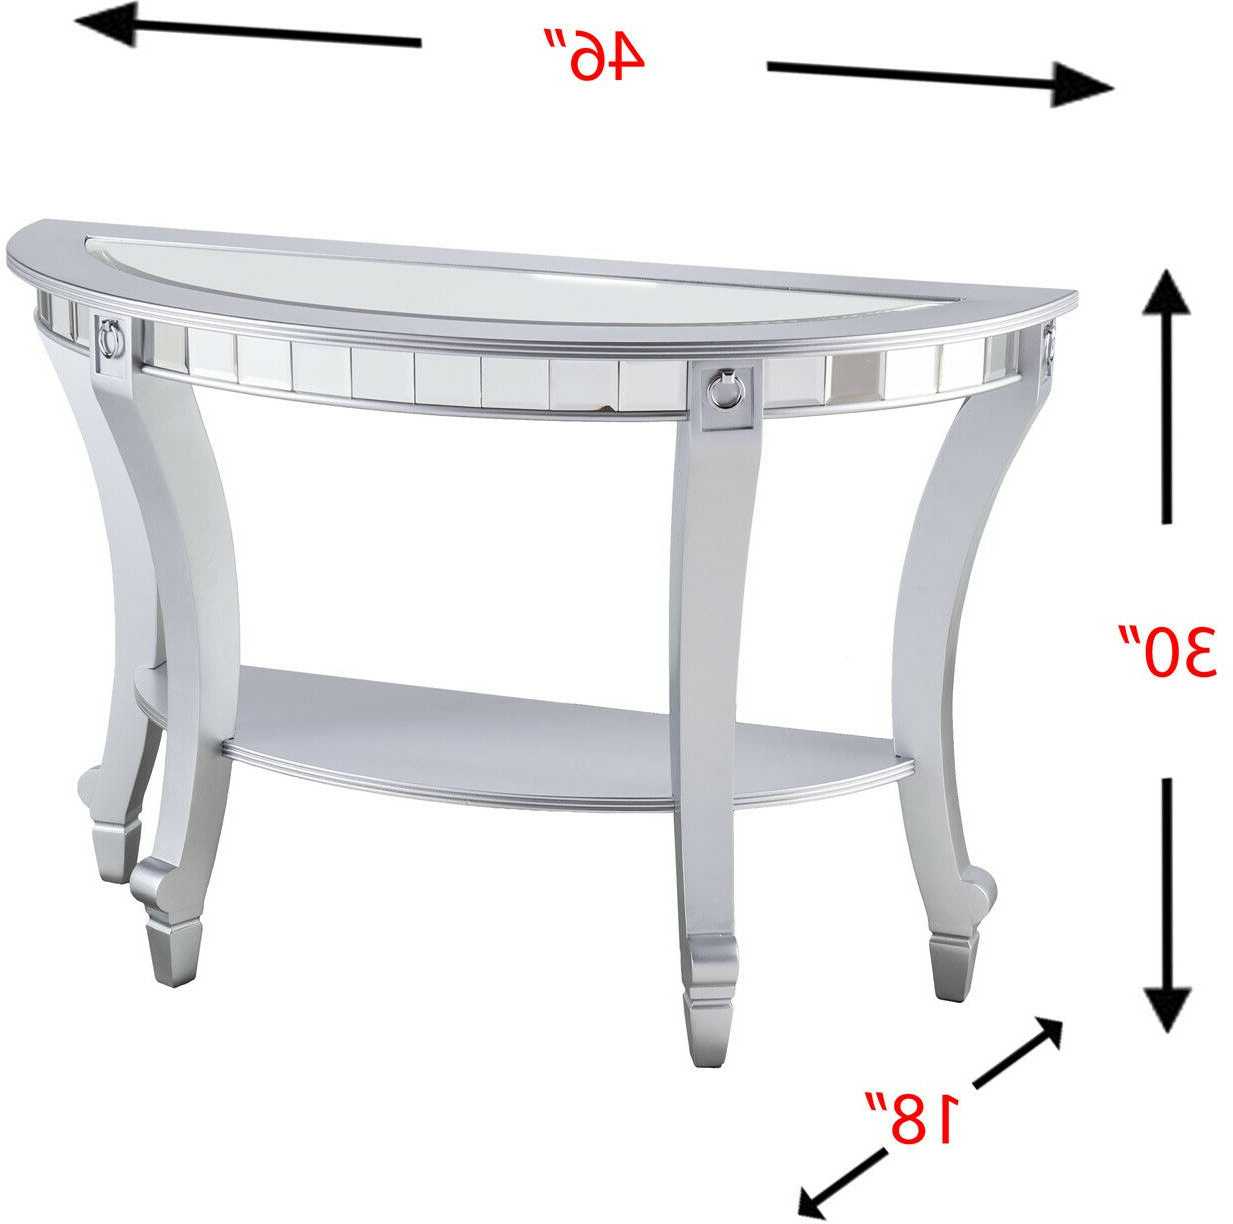 Olivia Glam Mirrored Demilune Console Table – Matte Silver In Preferred Silver Orchid Olivia Glam Mirrored Round Cocktail Tables (View 14 of 20)